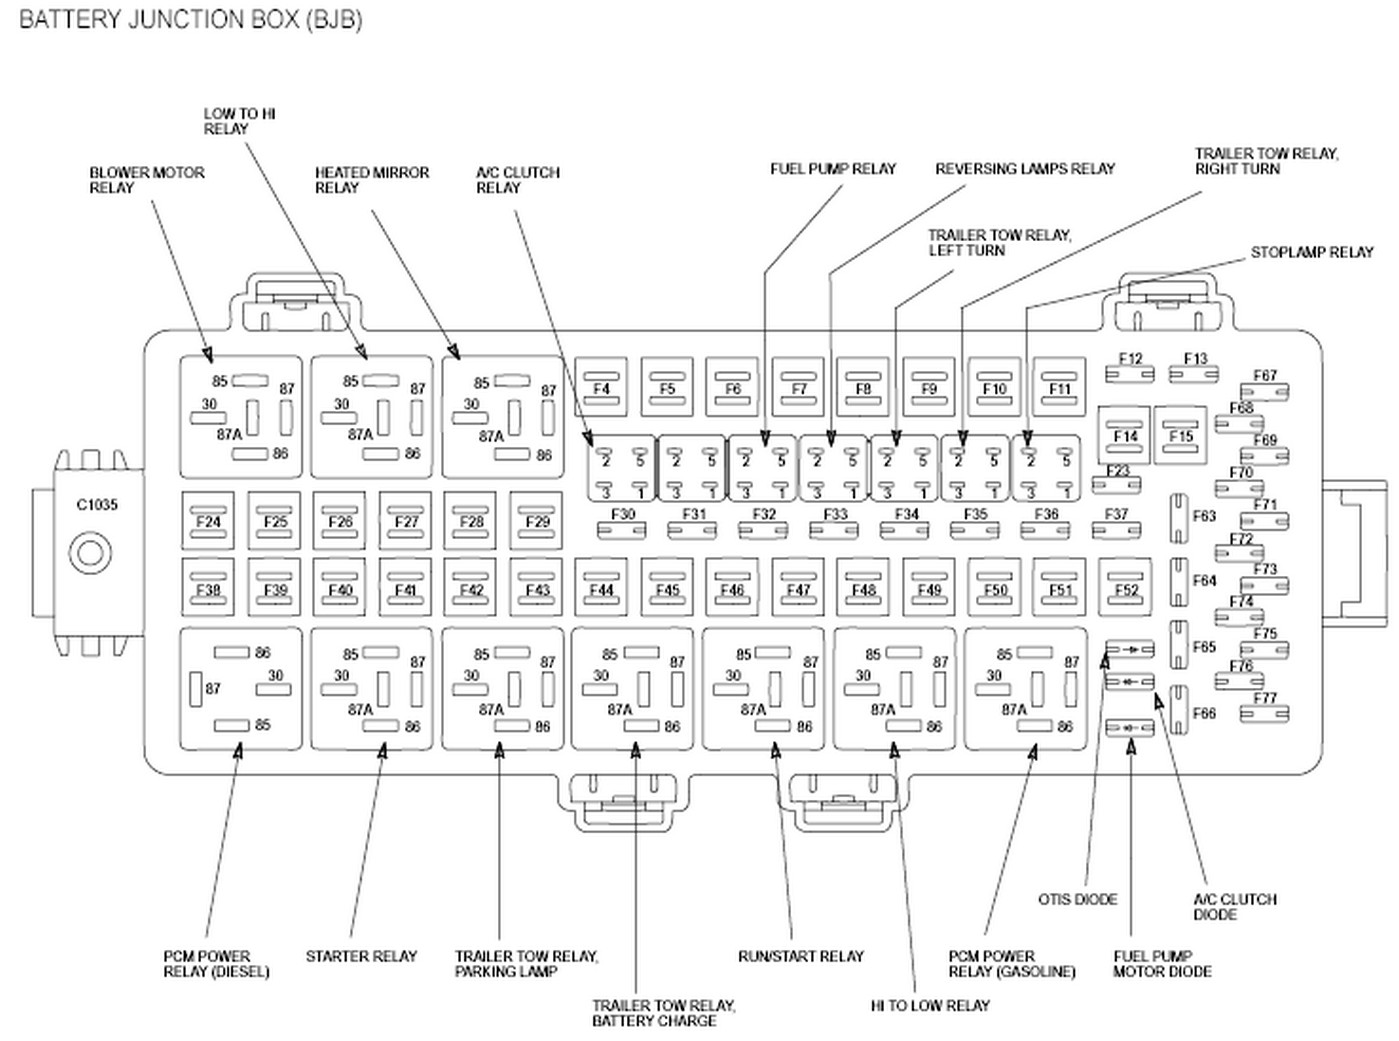 08 Ford F 350 Fuse Box Diagram List Of Schematic Circuit 2012 Focus Compartment Interior 2011 F250 Image Details Rh Motogurumag Com